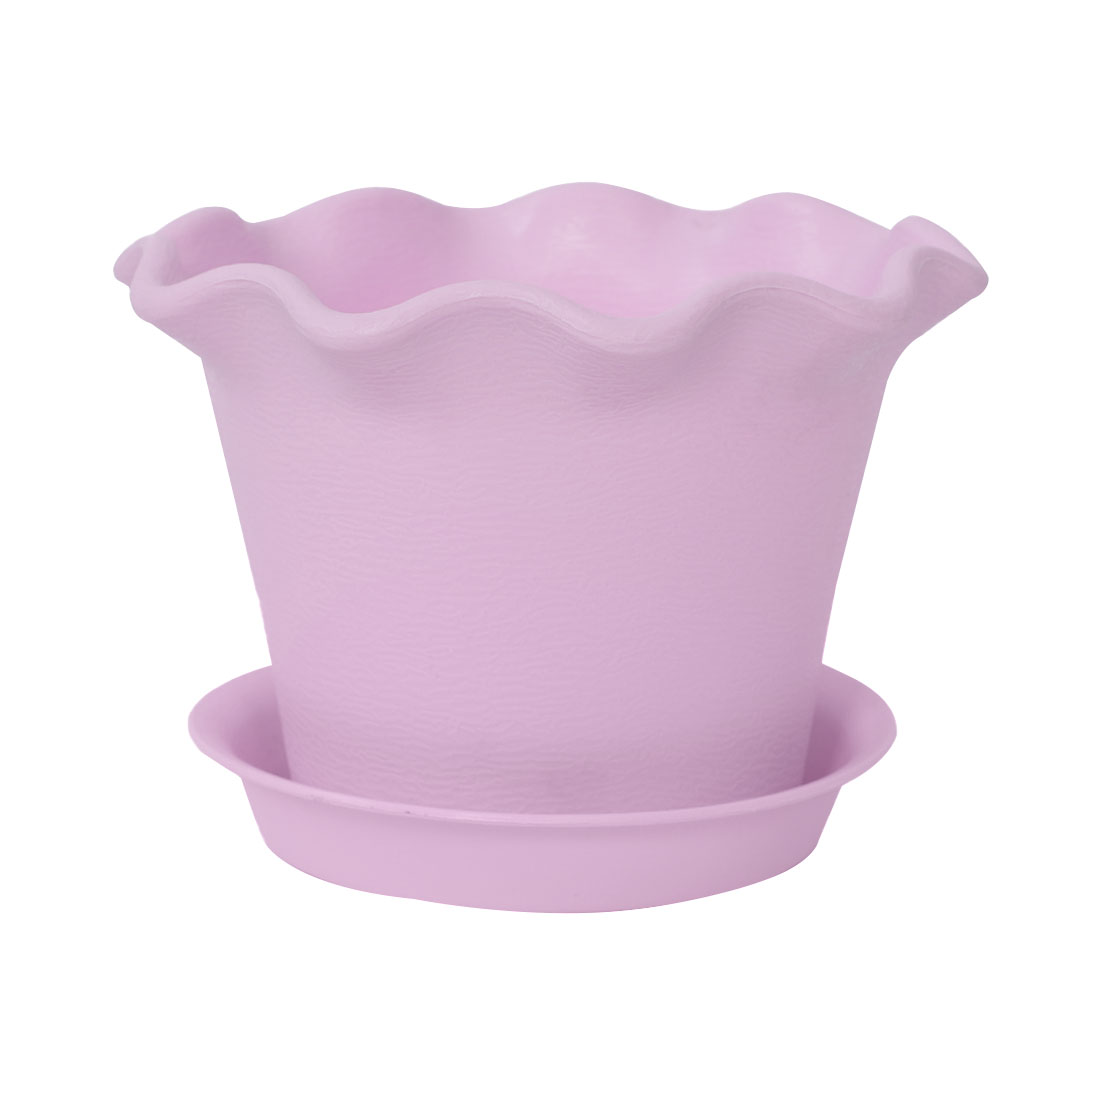 Home Office Plastic Petal Shaped Plant Planter Holder Flower Pot Purple w Tray